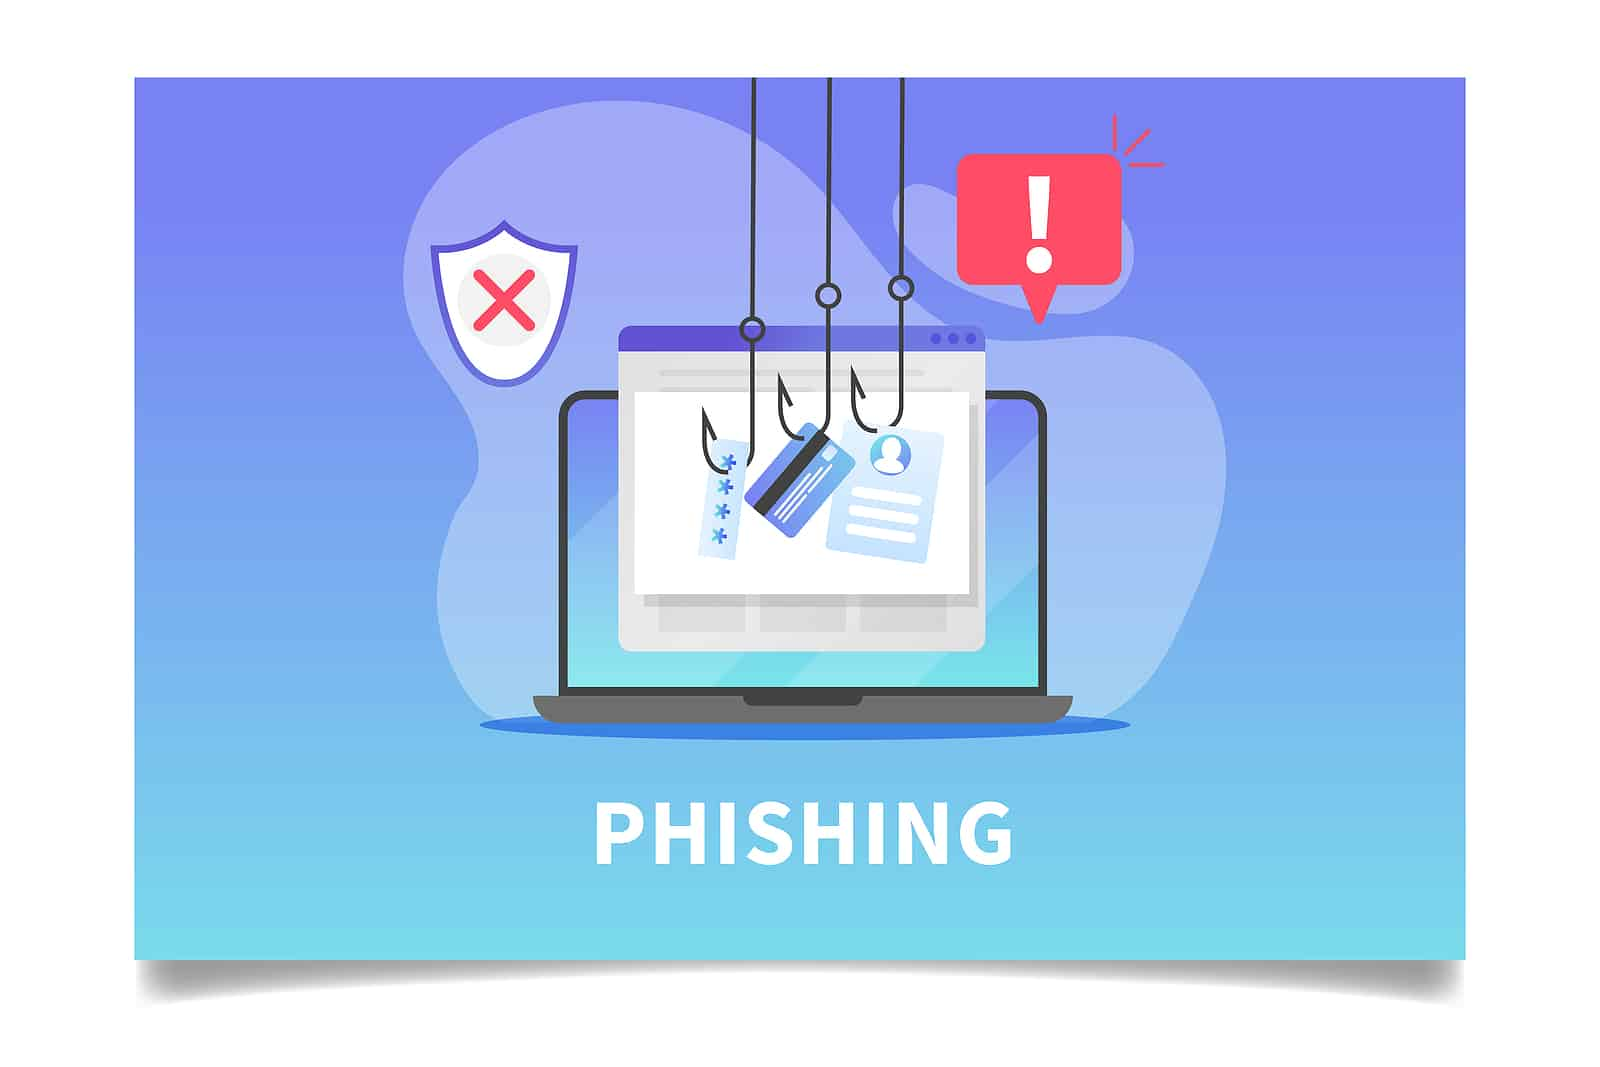 Phishing Emails With Fraudulent Invoices from Online Retailers